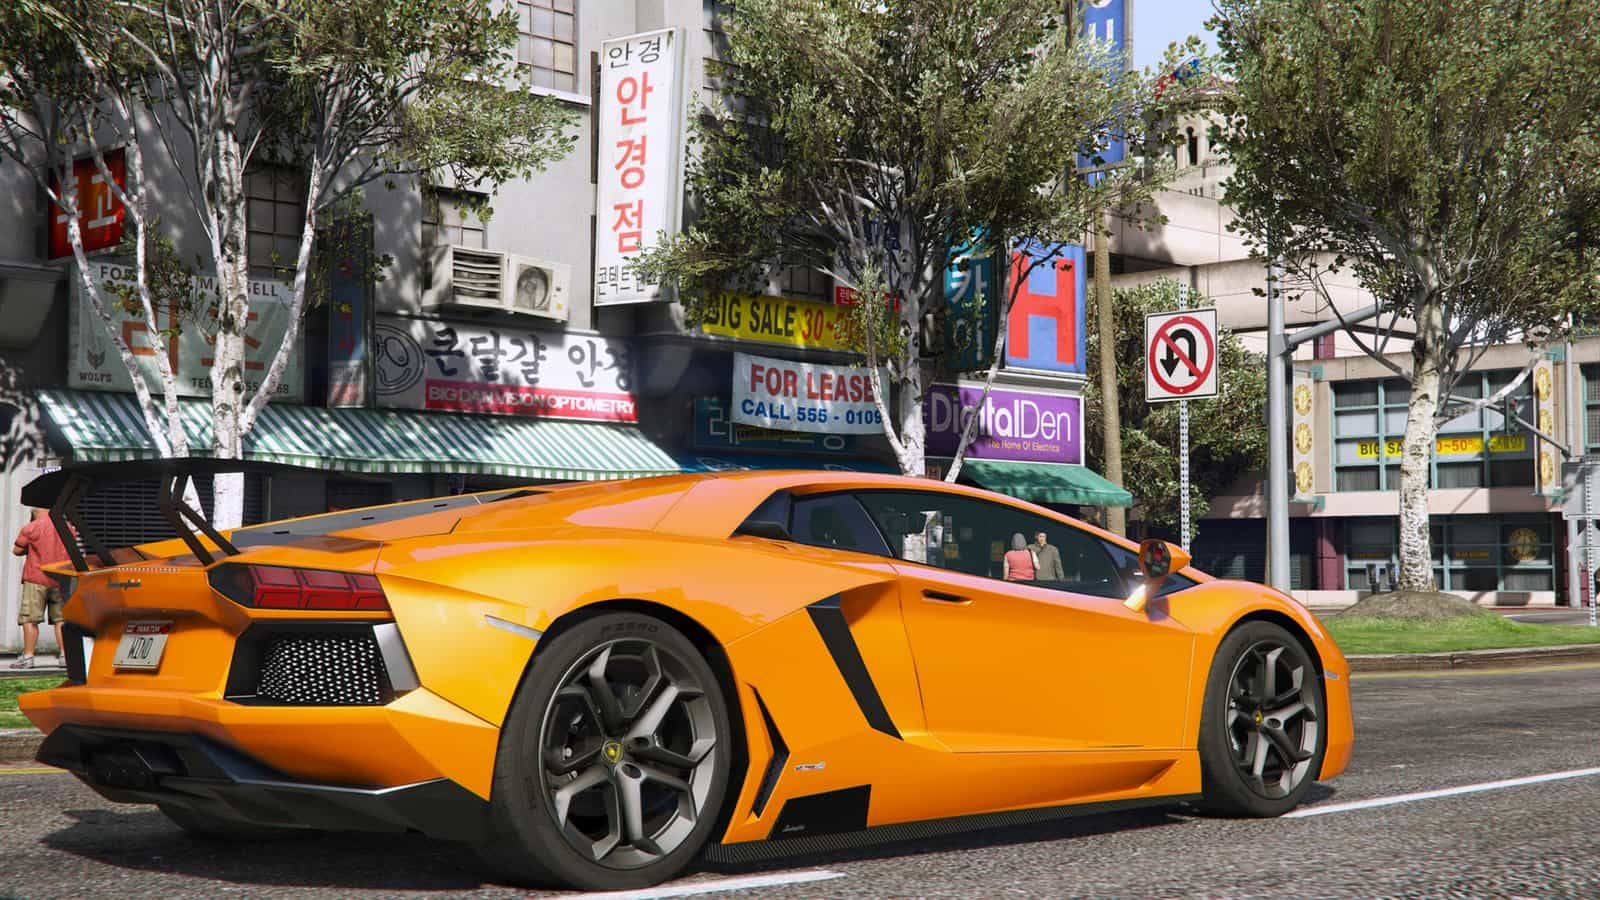 Opinion: The Highest Rated GTA V Mod Is A Car? - GTA BOOM